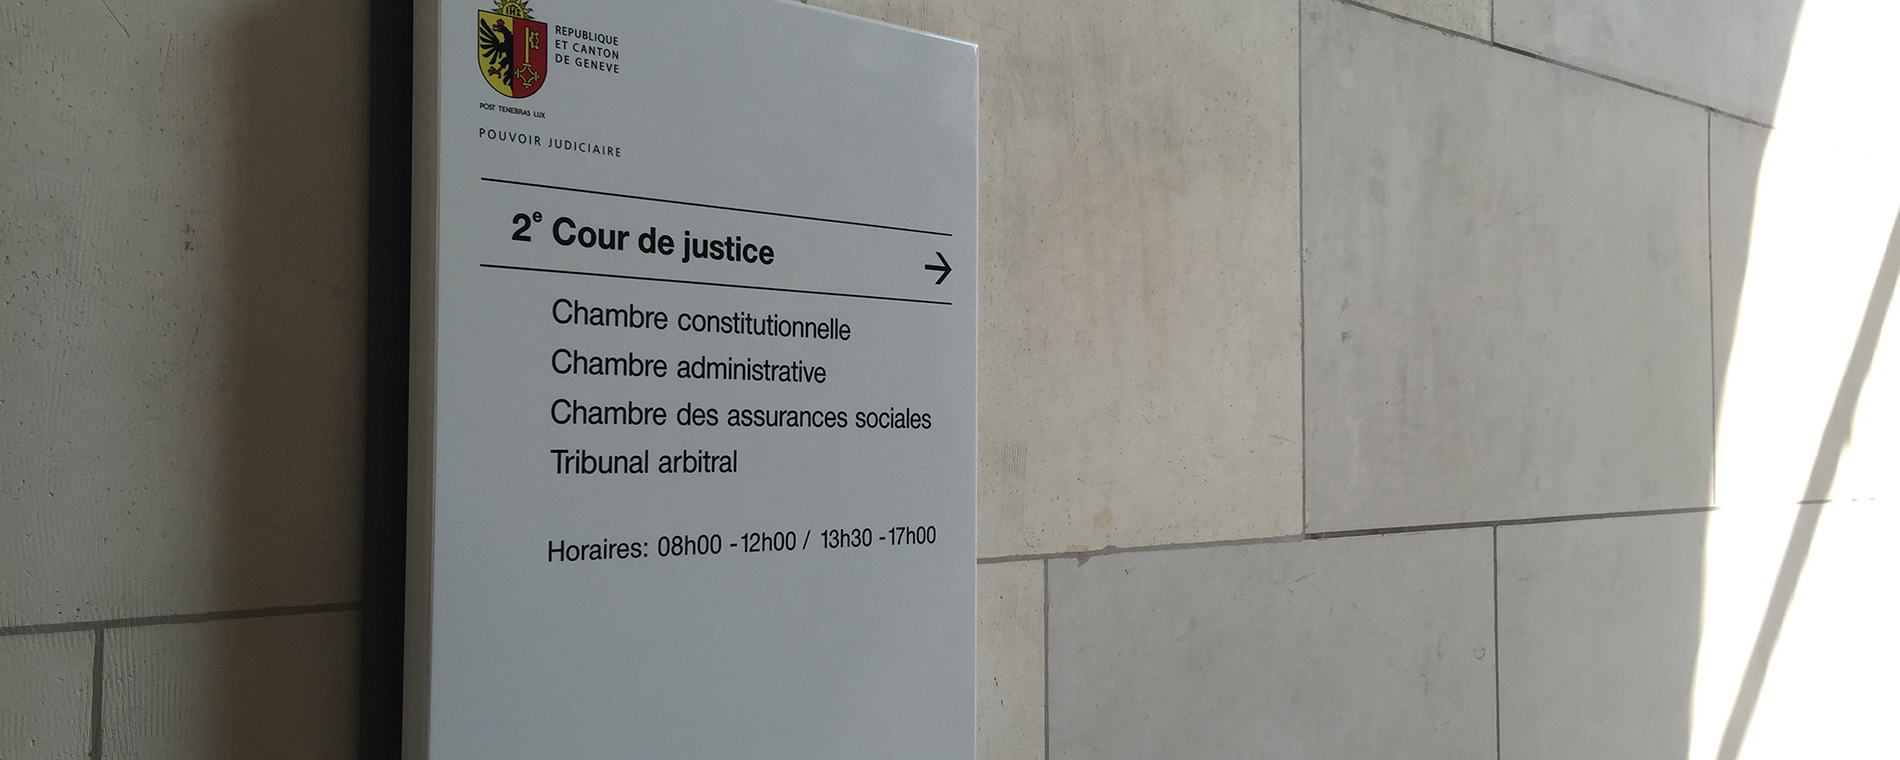 cours-justice2